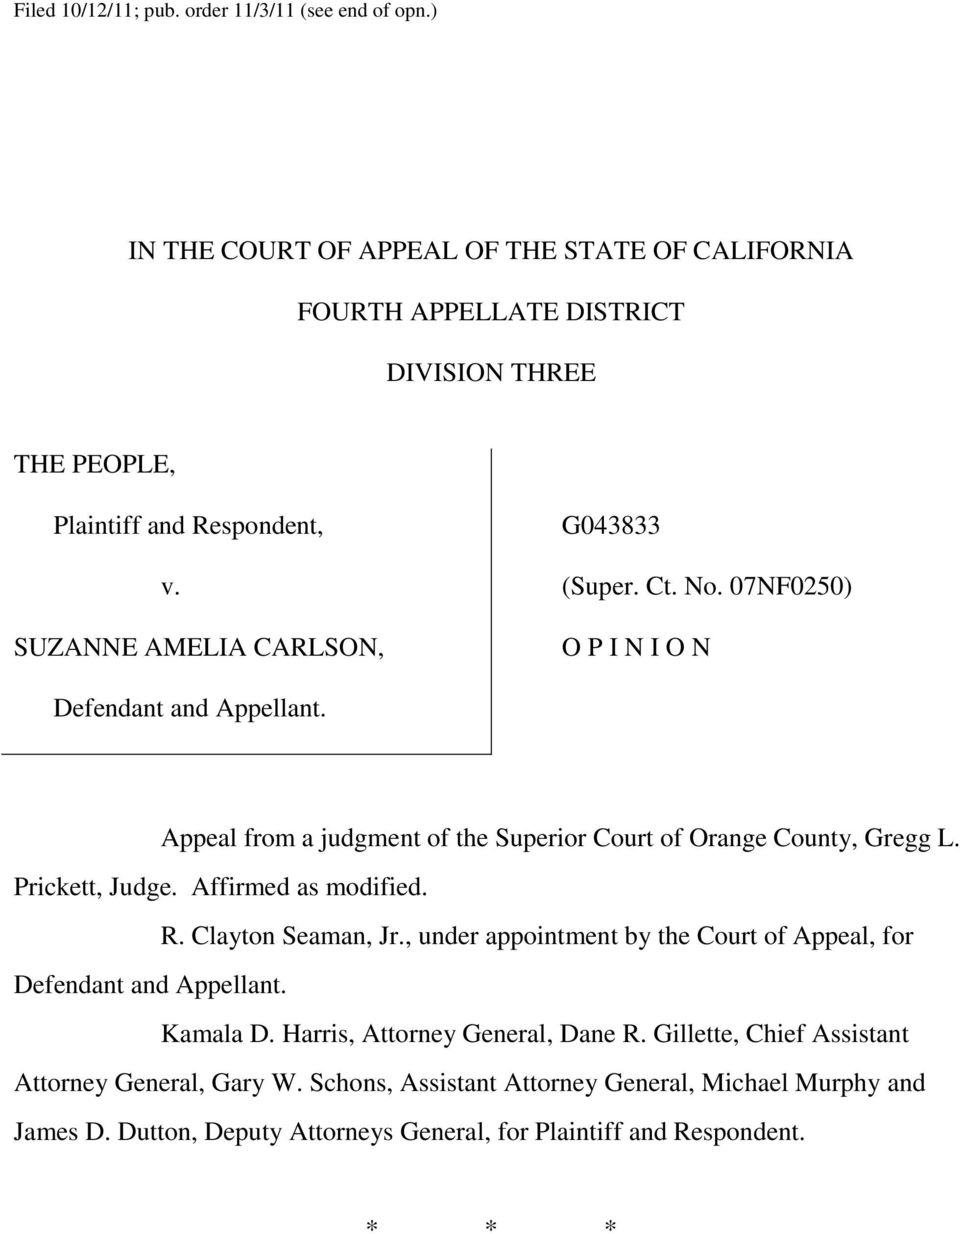 No. 07NF0250) O P I N I O N Defendant and Appellant. Appeal from a judgment of the Superior Court of Orange County, Gregg L. Prickett, Judge. Affirmed as modified. R.